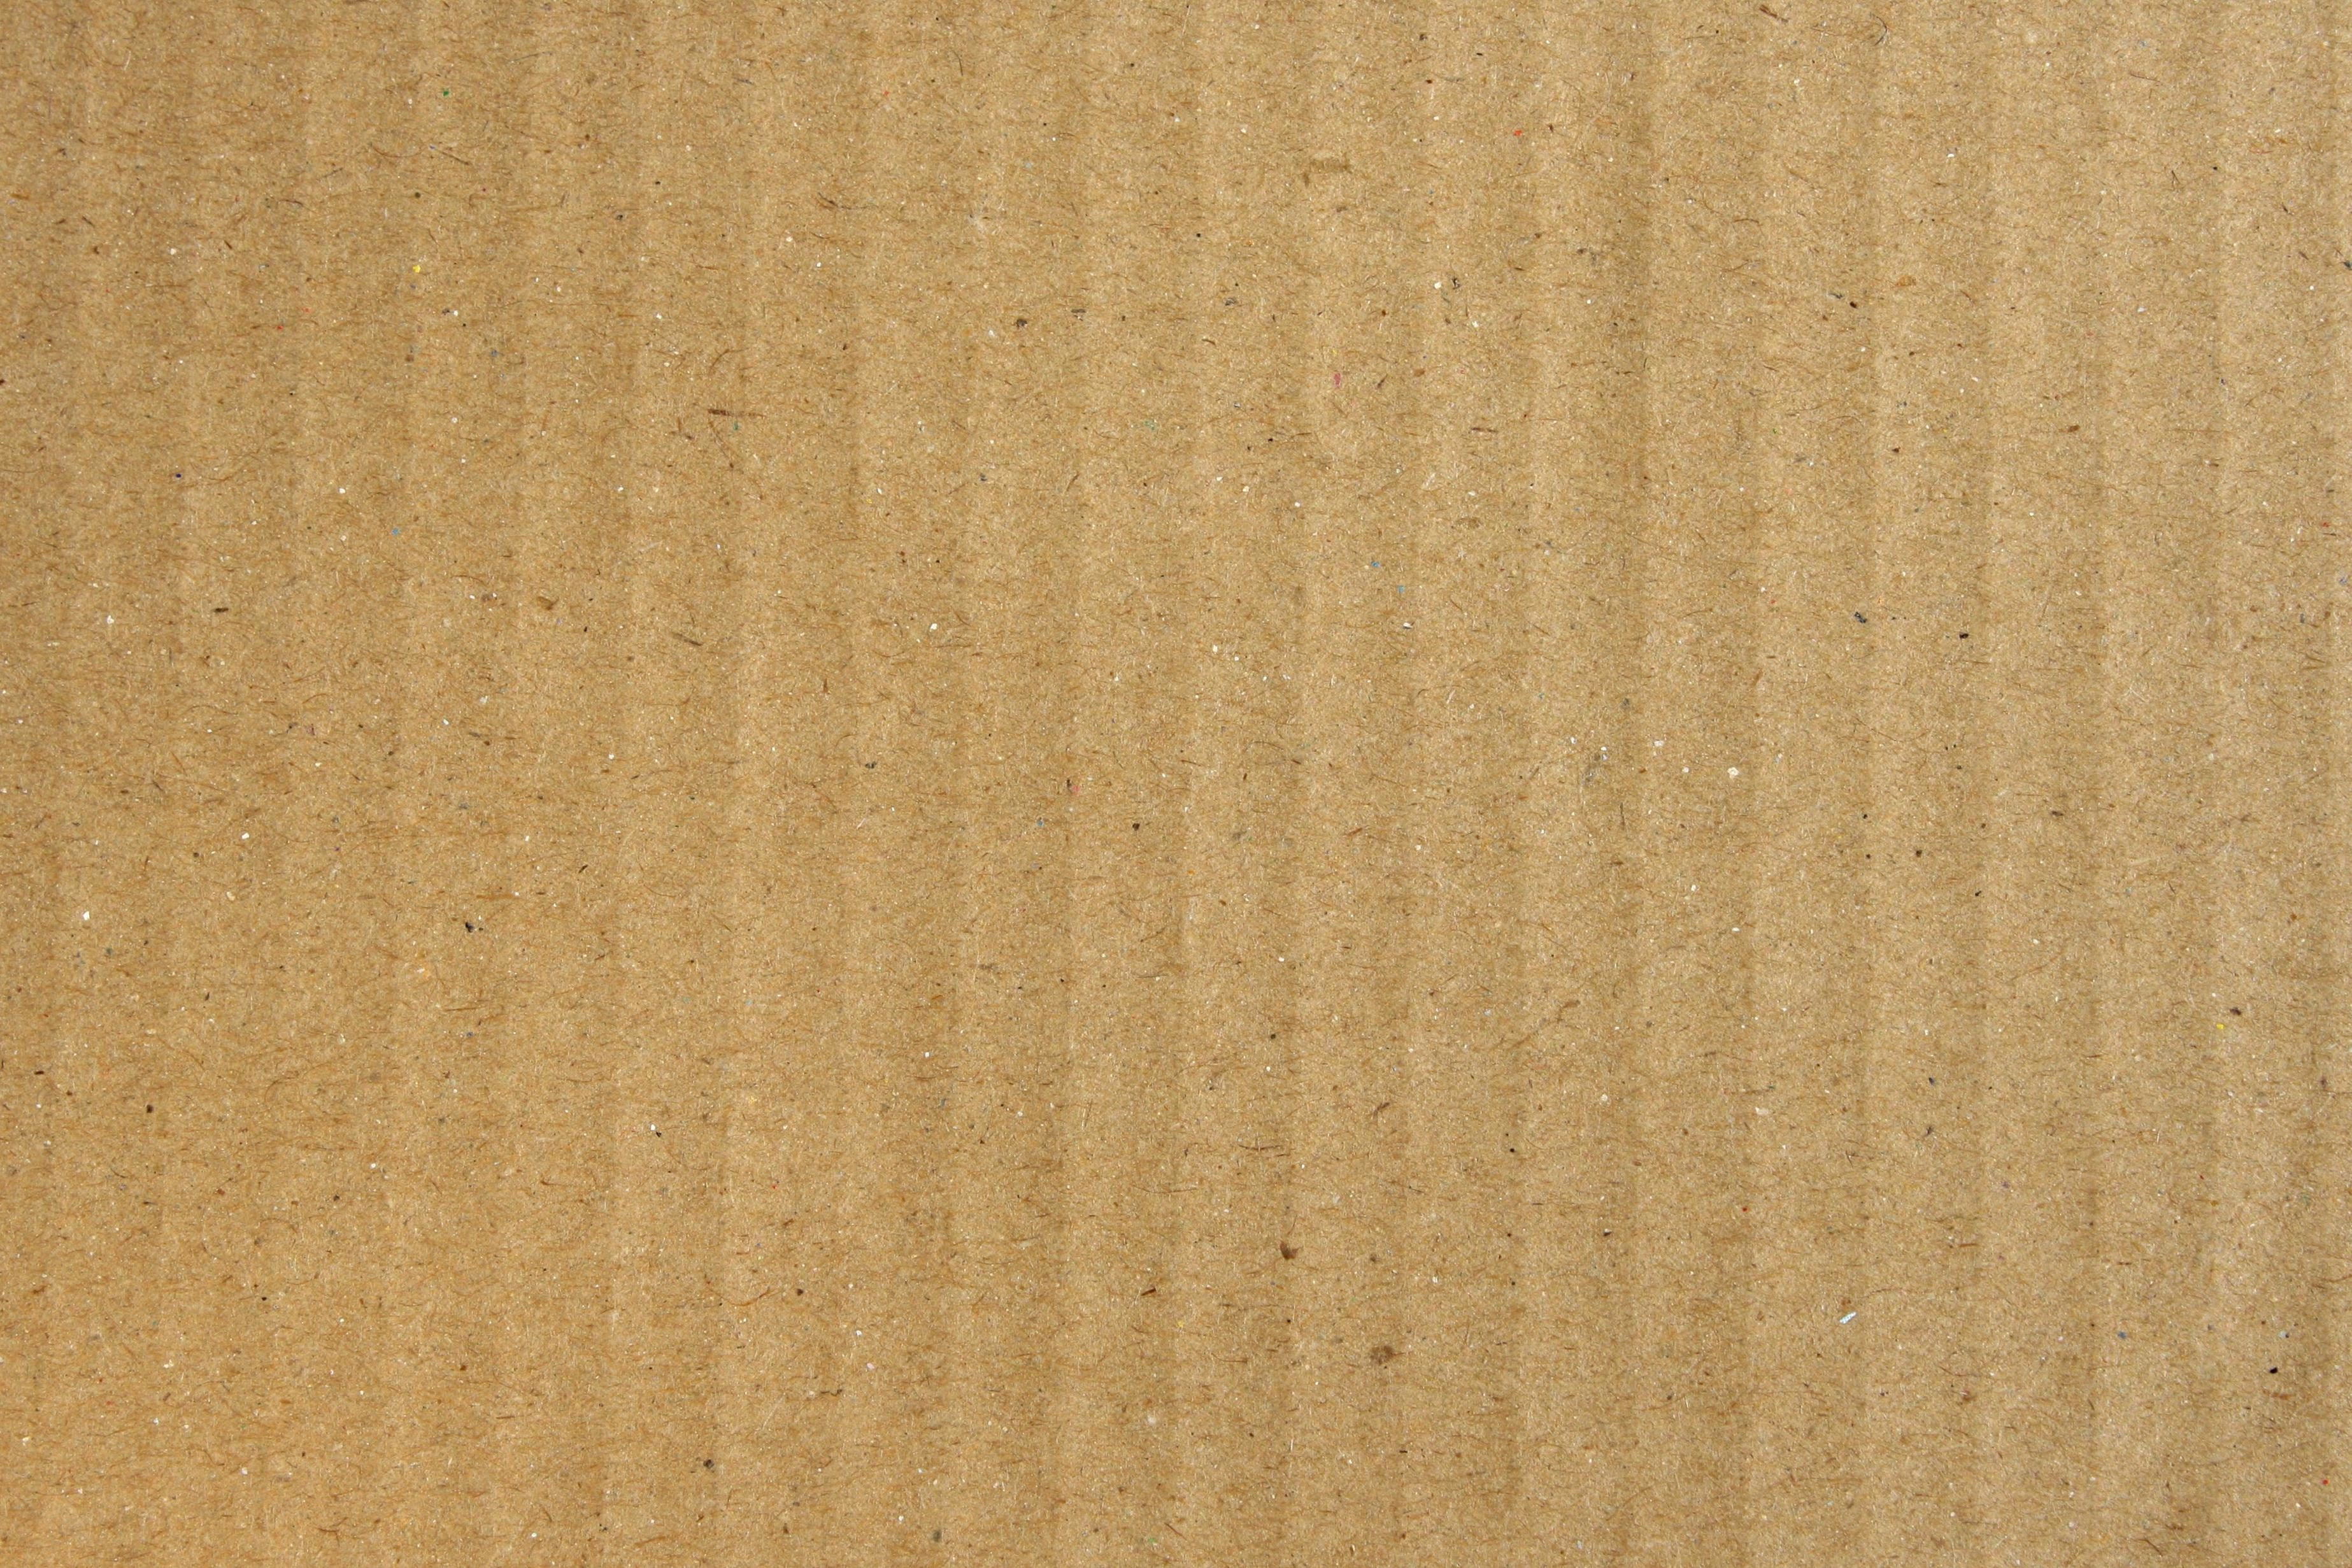 Free picture: cardboard, carton, paper, texture